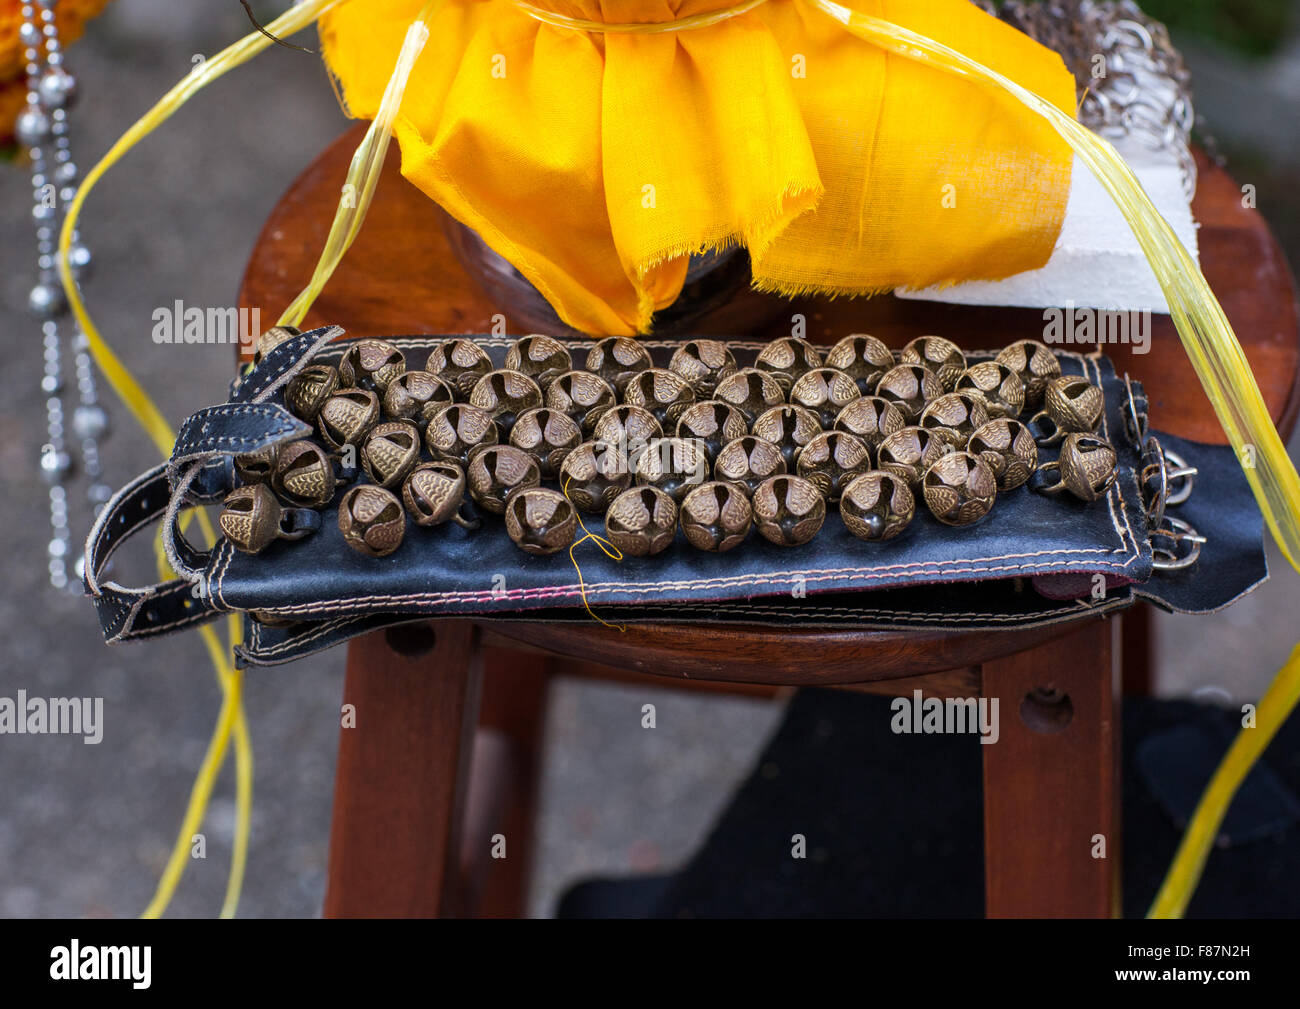 Bells For Hindu Devotees In Annual Thaipusam Religious Festival In Batu Caves, Southeast Asia, Kuala Lumpur, Malaysia - Stock Image